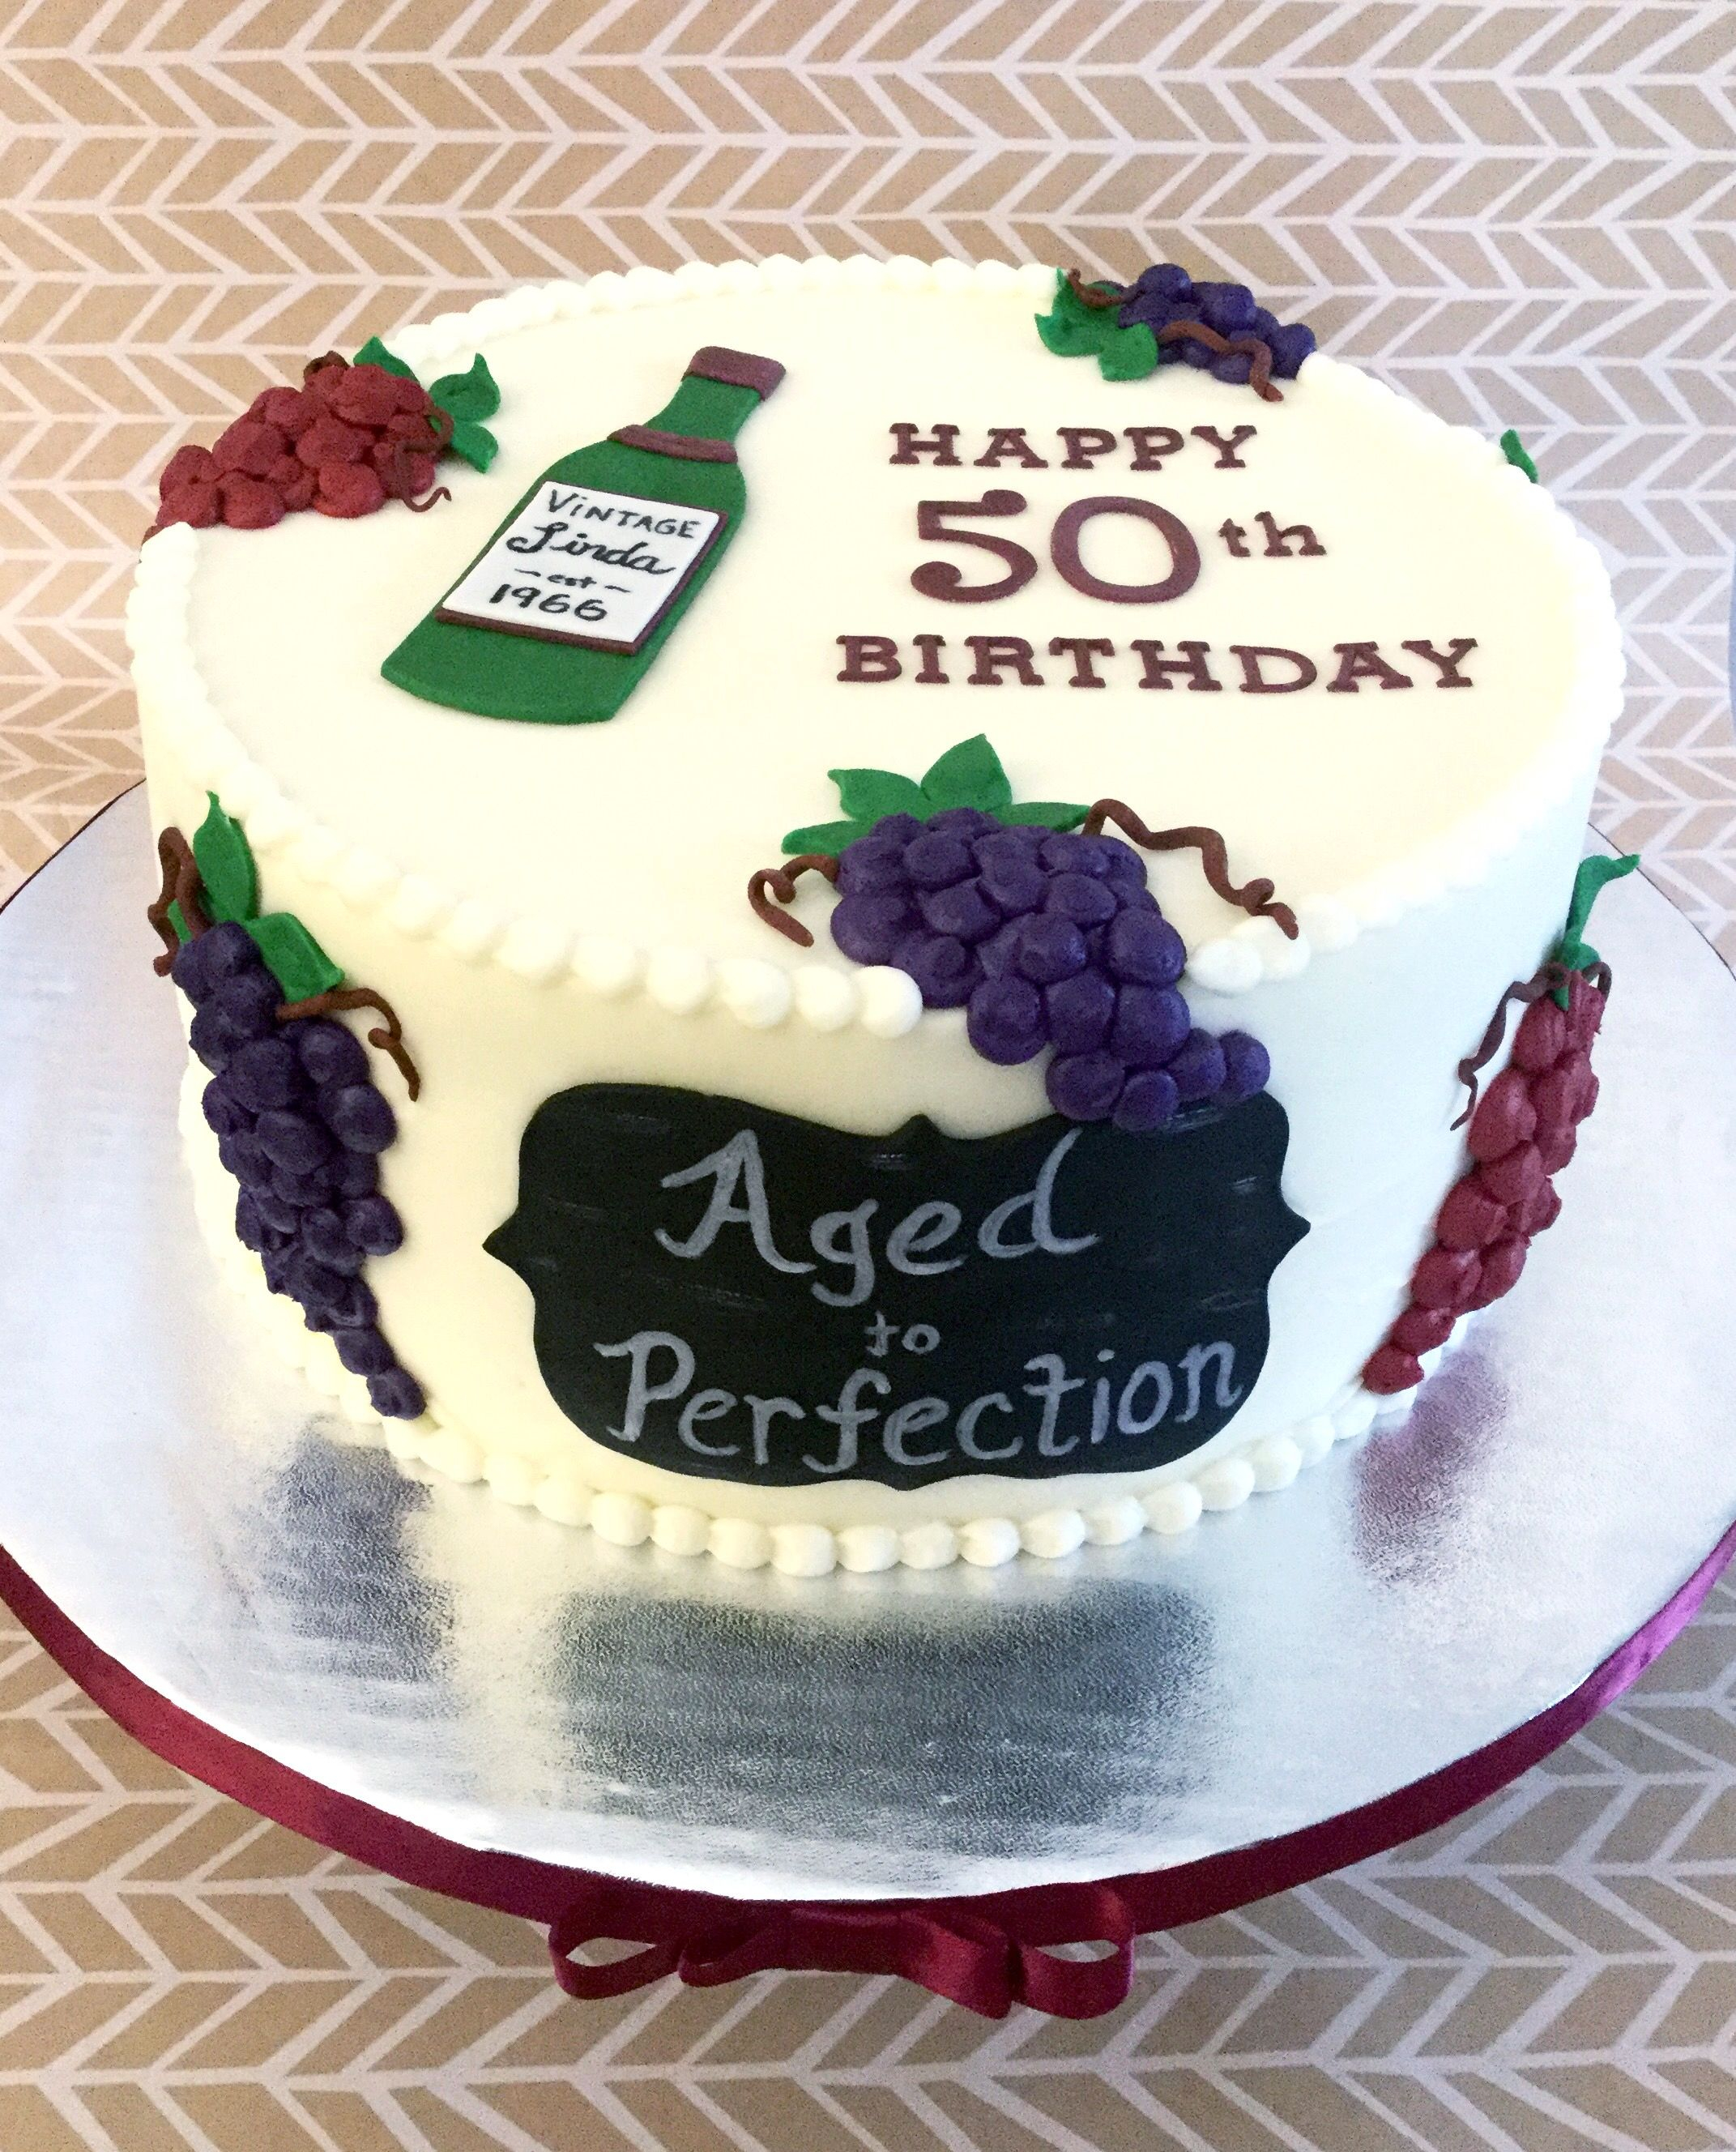 Happy Birthday Cake Pictures Wine Themed 50th Birthday Cake Sweet Lias Cakes Treats